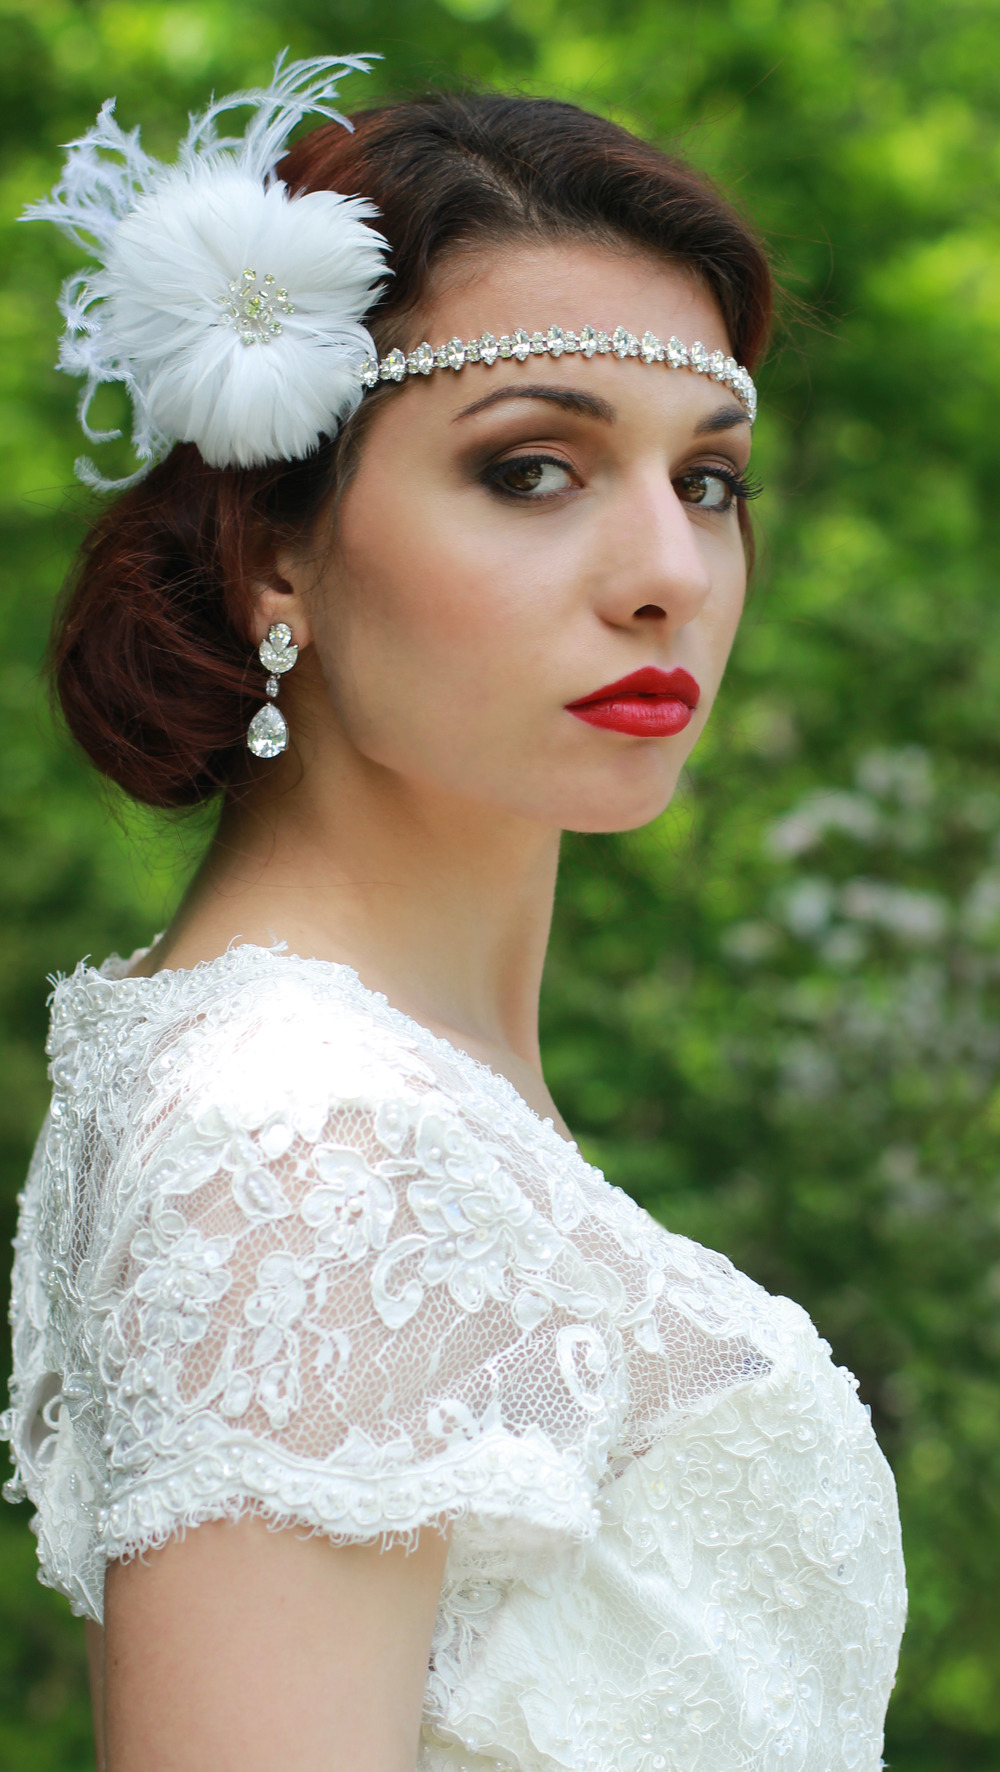 Vintage Glamour Wedding | Bride - Jess Rudolph Photography